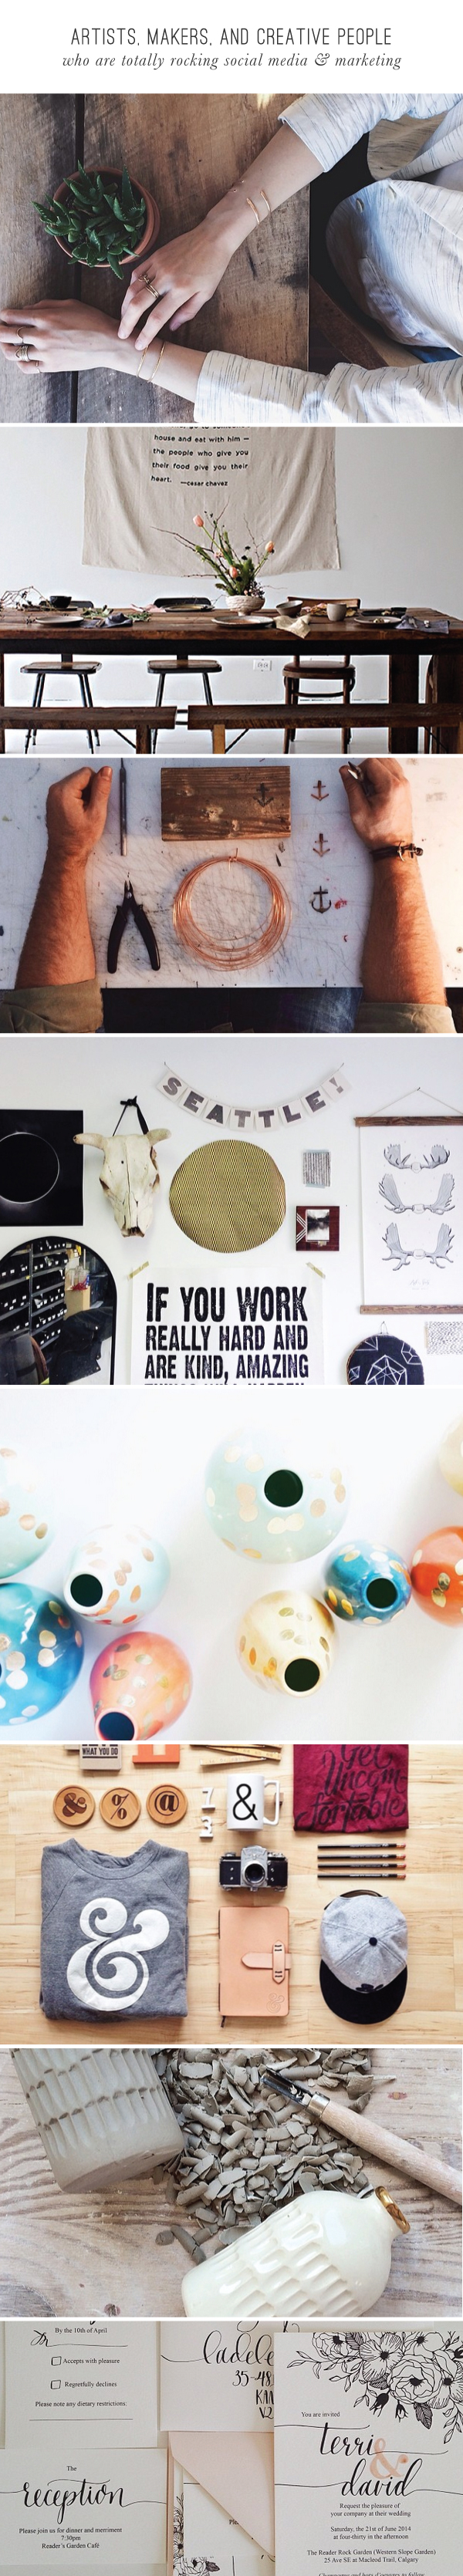 Artists, makers, and creative people  who are totally rocking social media & marketing  |  BeautifulHelloBlog.com